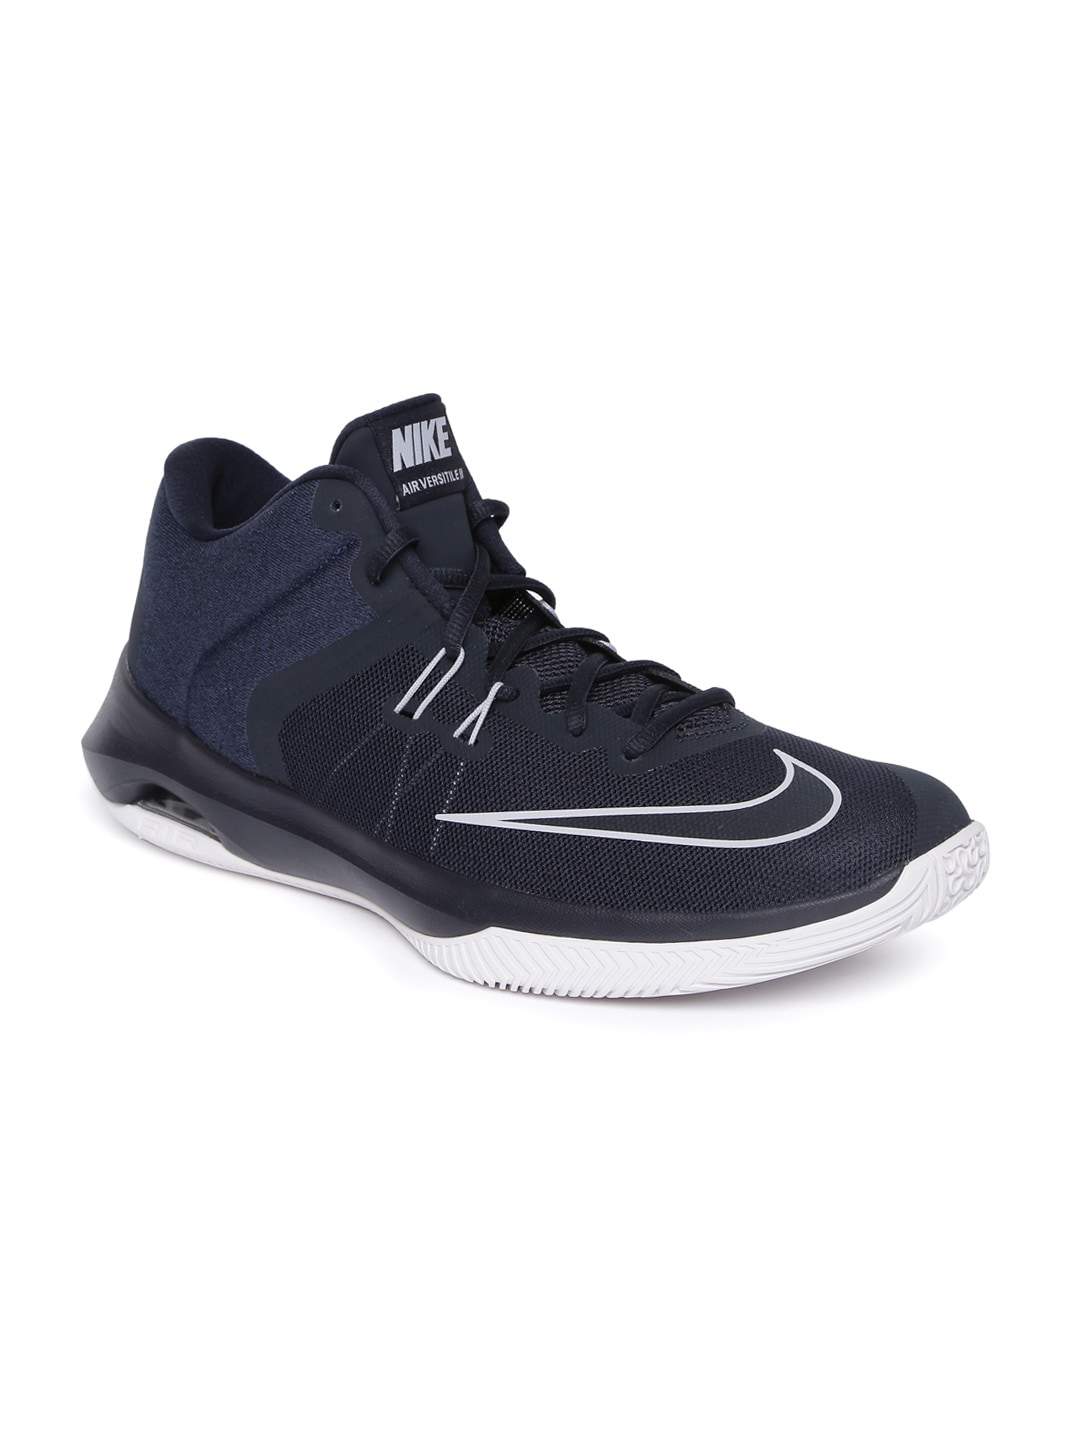 the best attitude 86597 642fe Rafa Nike Cap Sports Shoes - Buy Rafa Nike Cap Sports Shoes online in India